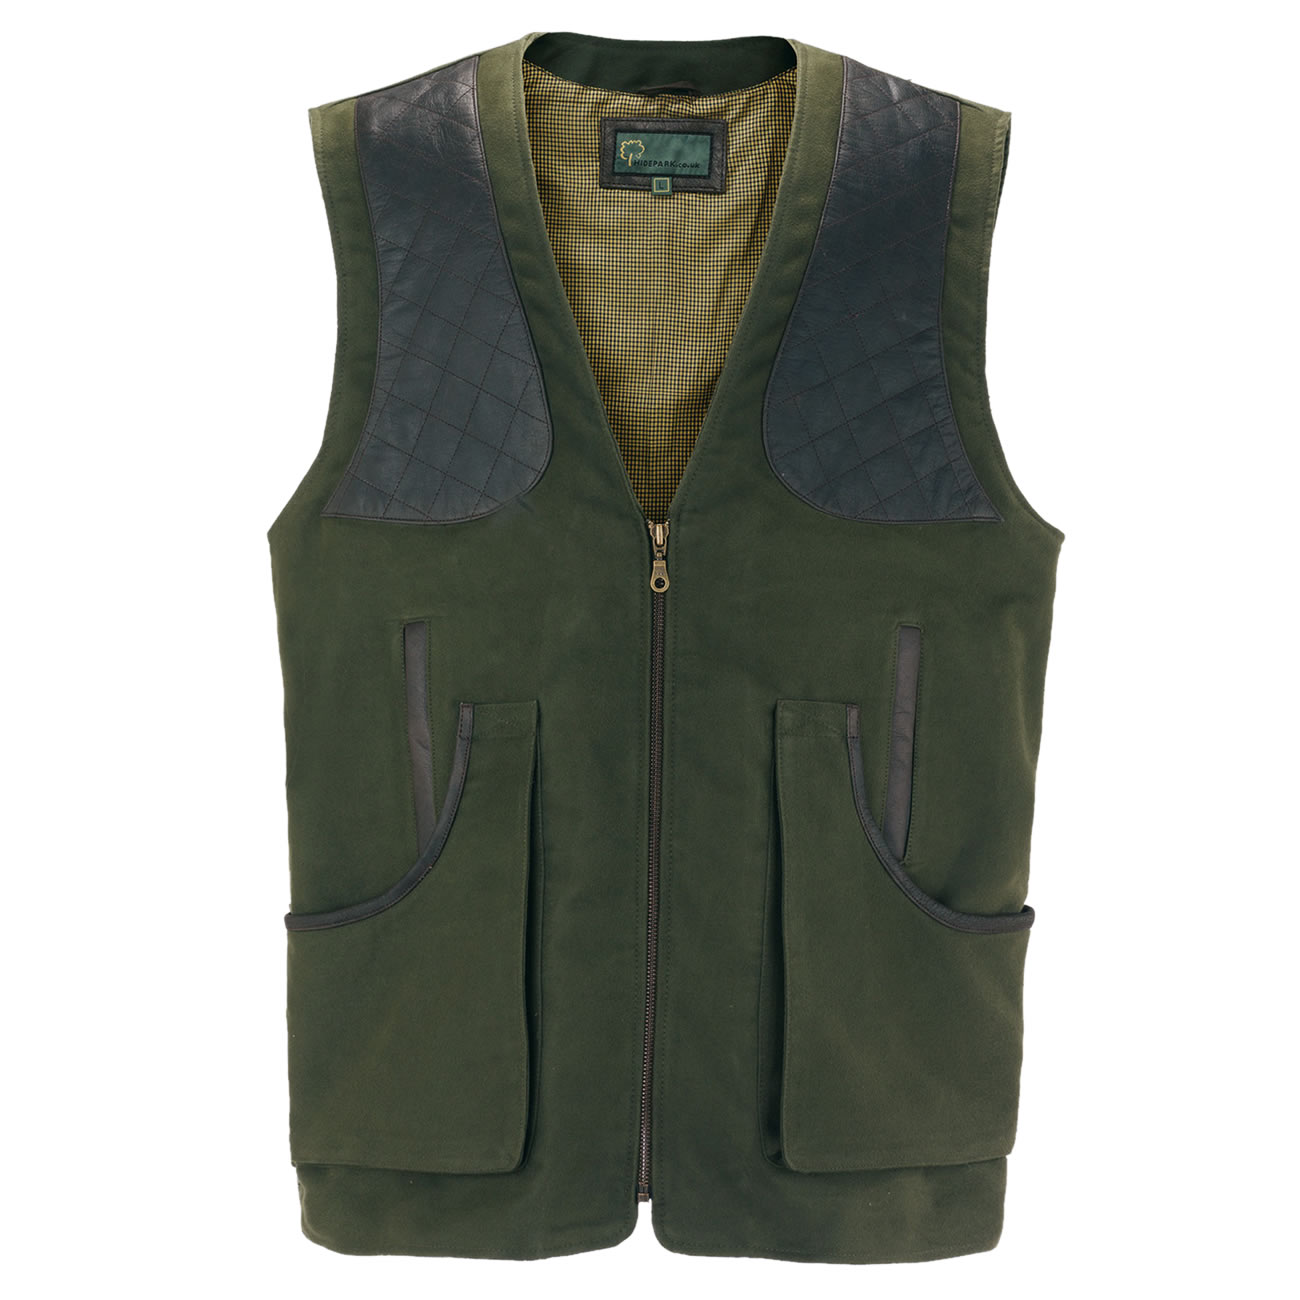 Gents moleskin shooting vest green M